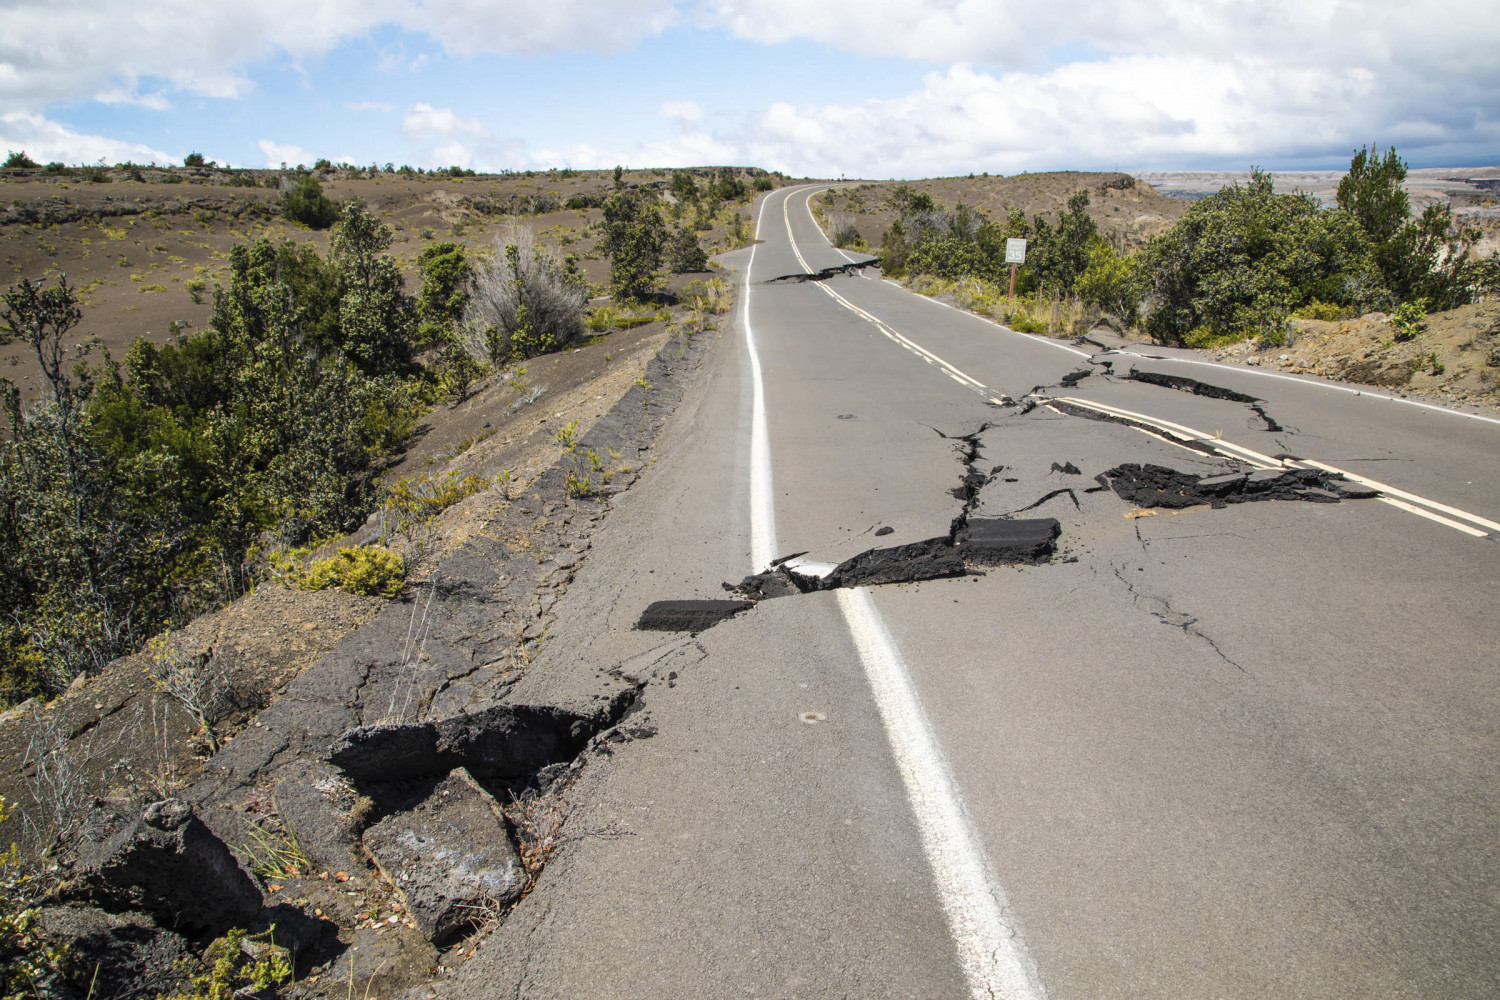 This National Park Service photo shows earthquake damage to Crater Rim Drive inside Hawaii Volcanoes National Park